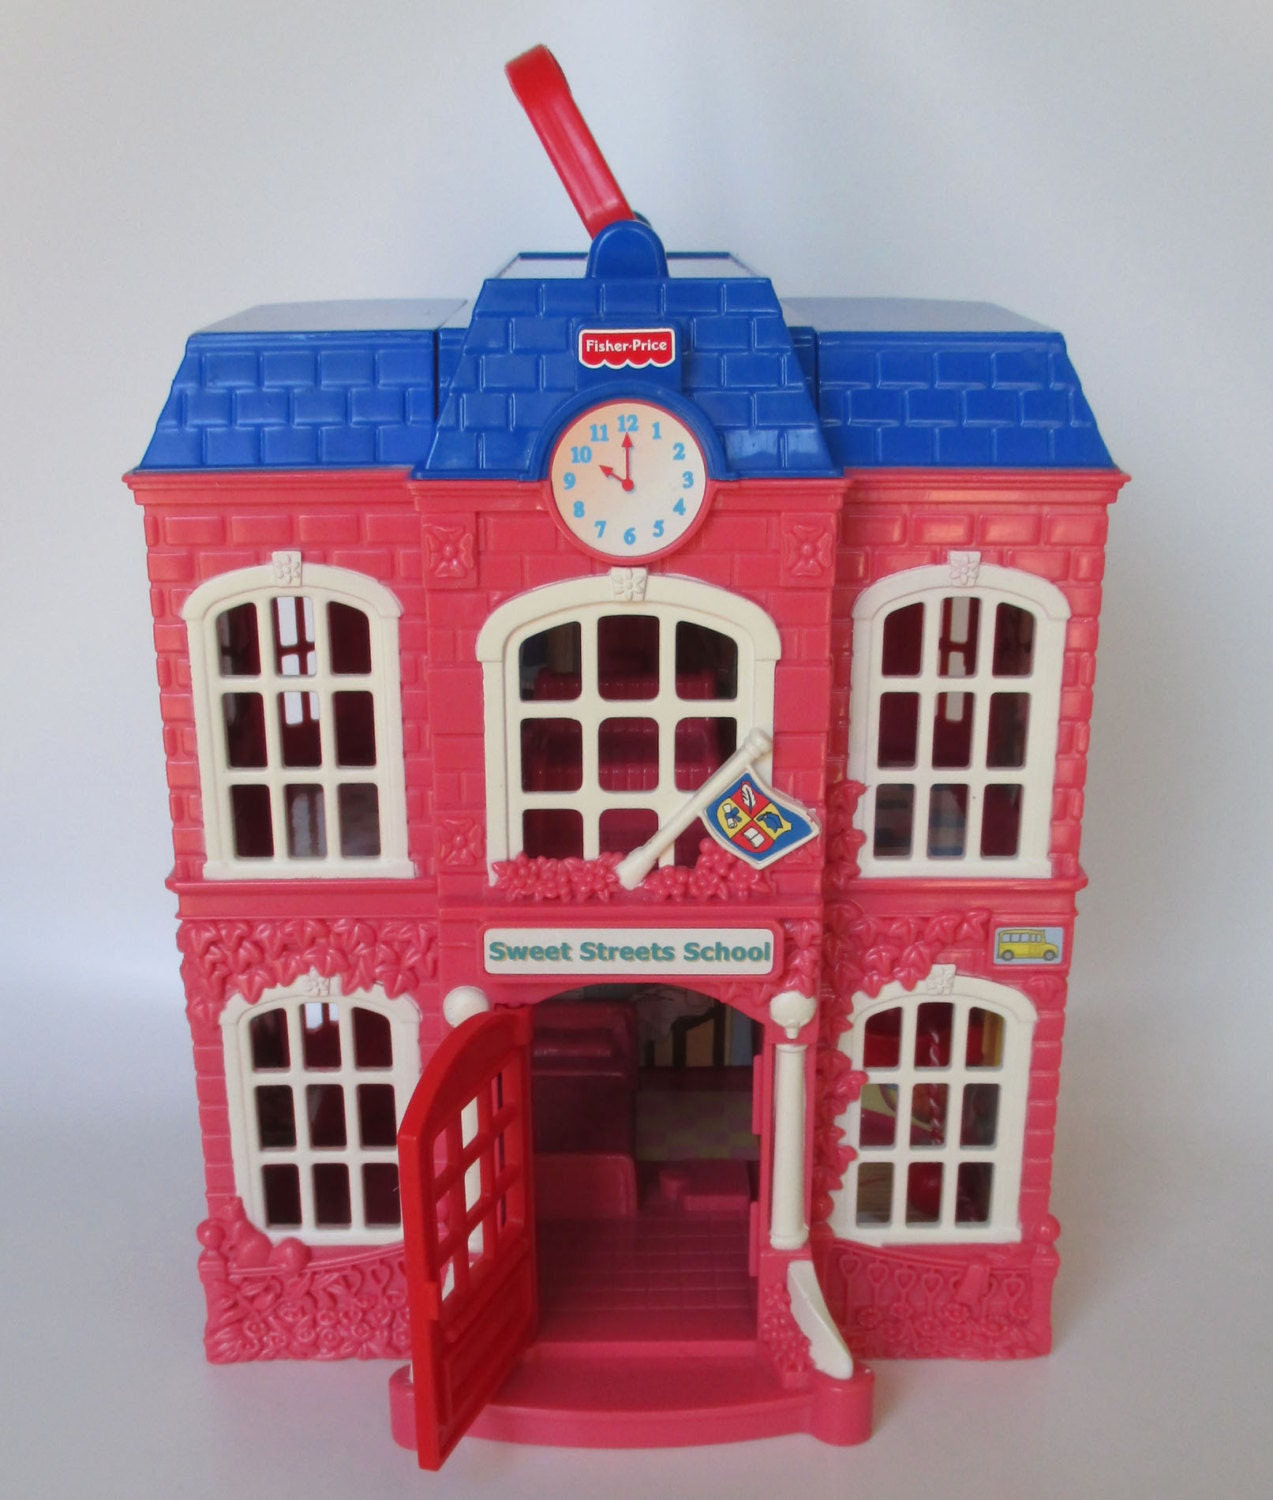 Dollhouse Furniture Discount Fisher Price Year Loving: Dollhouse Fisher Price Sweet Streets School House